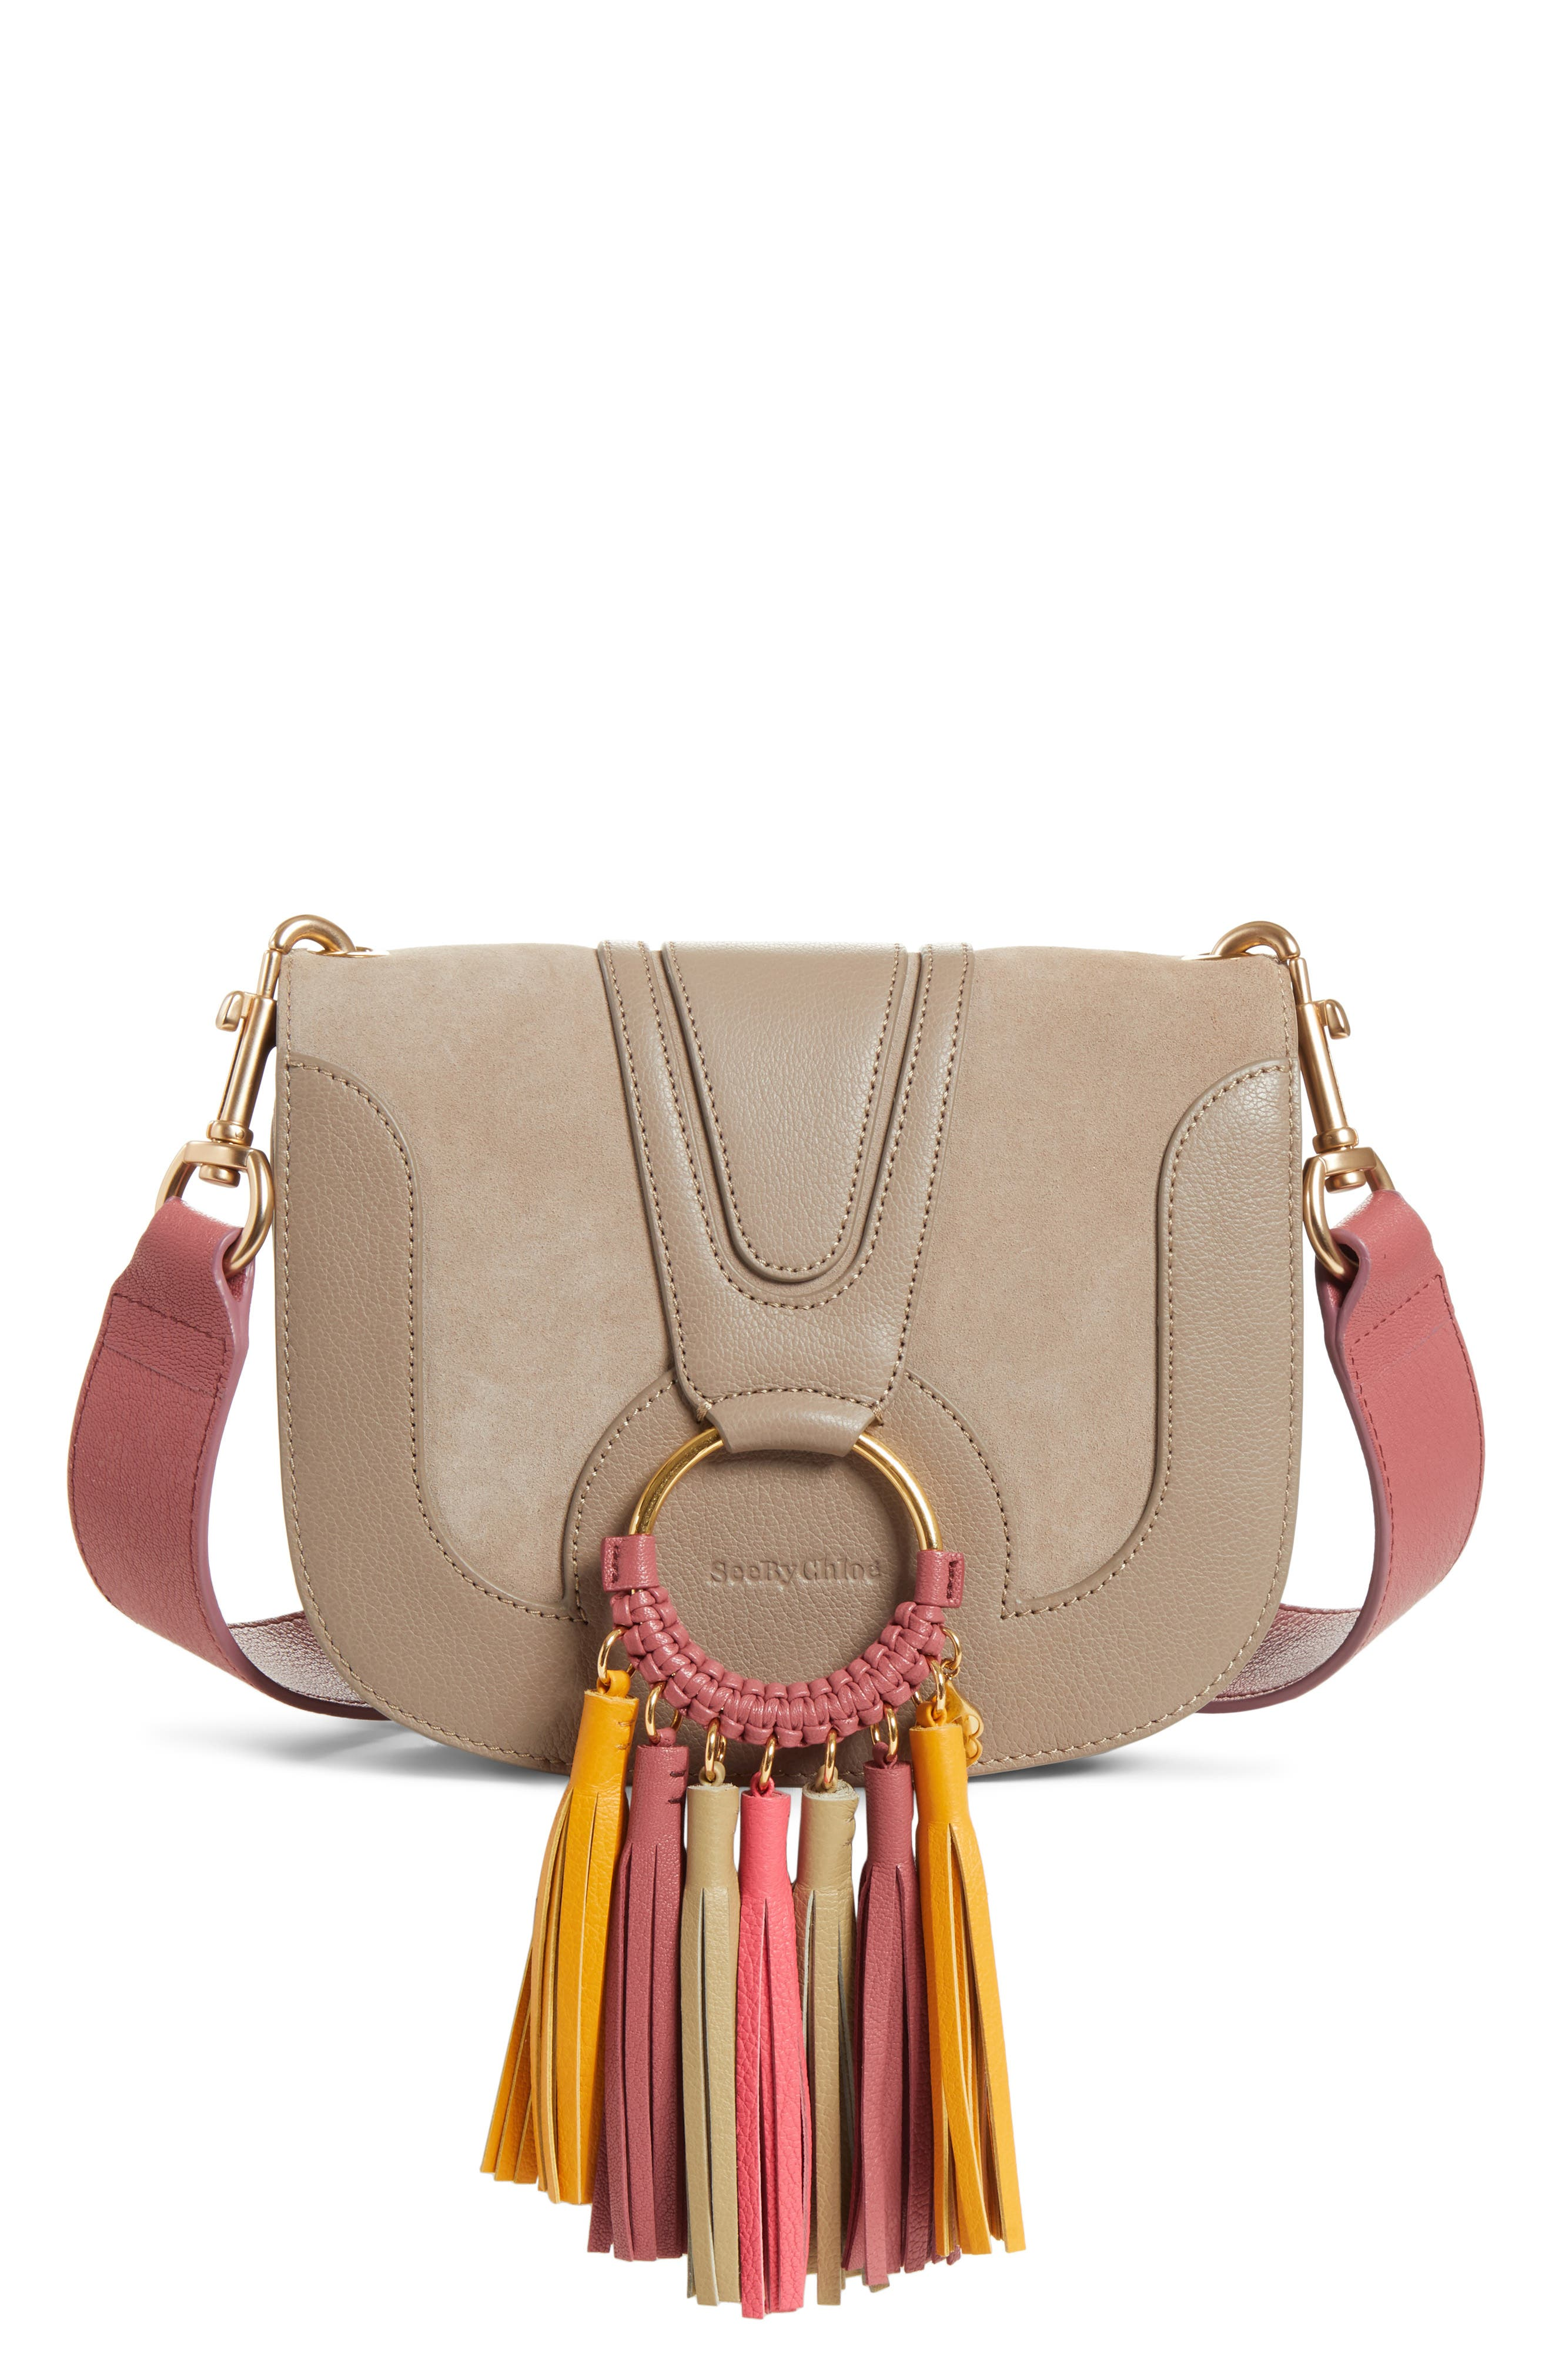 Hana Leather Shoulder Bag, Main, color, 020